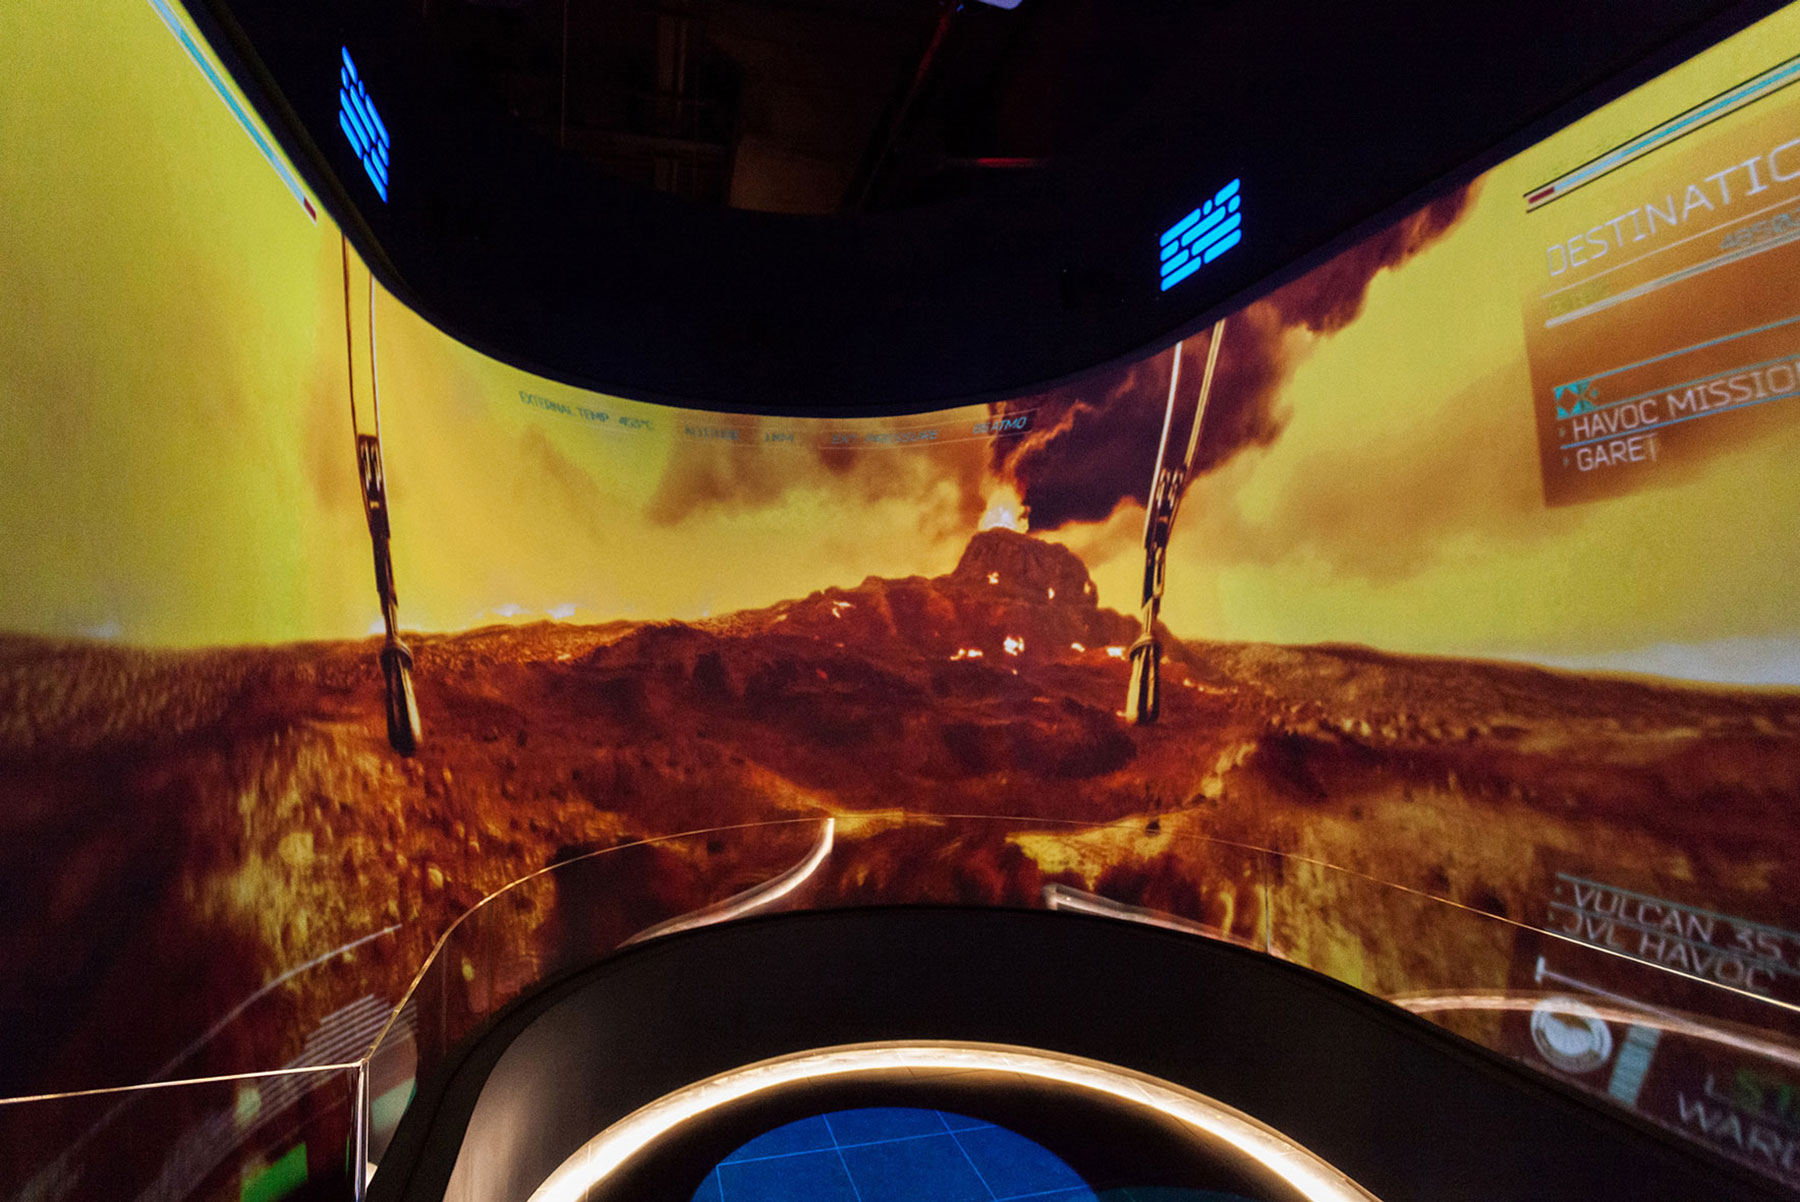 Destination Venus immersive attraction at the UK's National Space Center